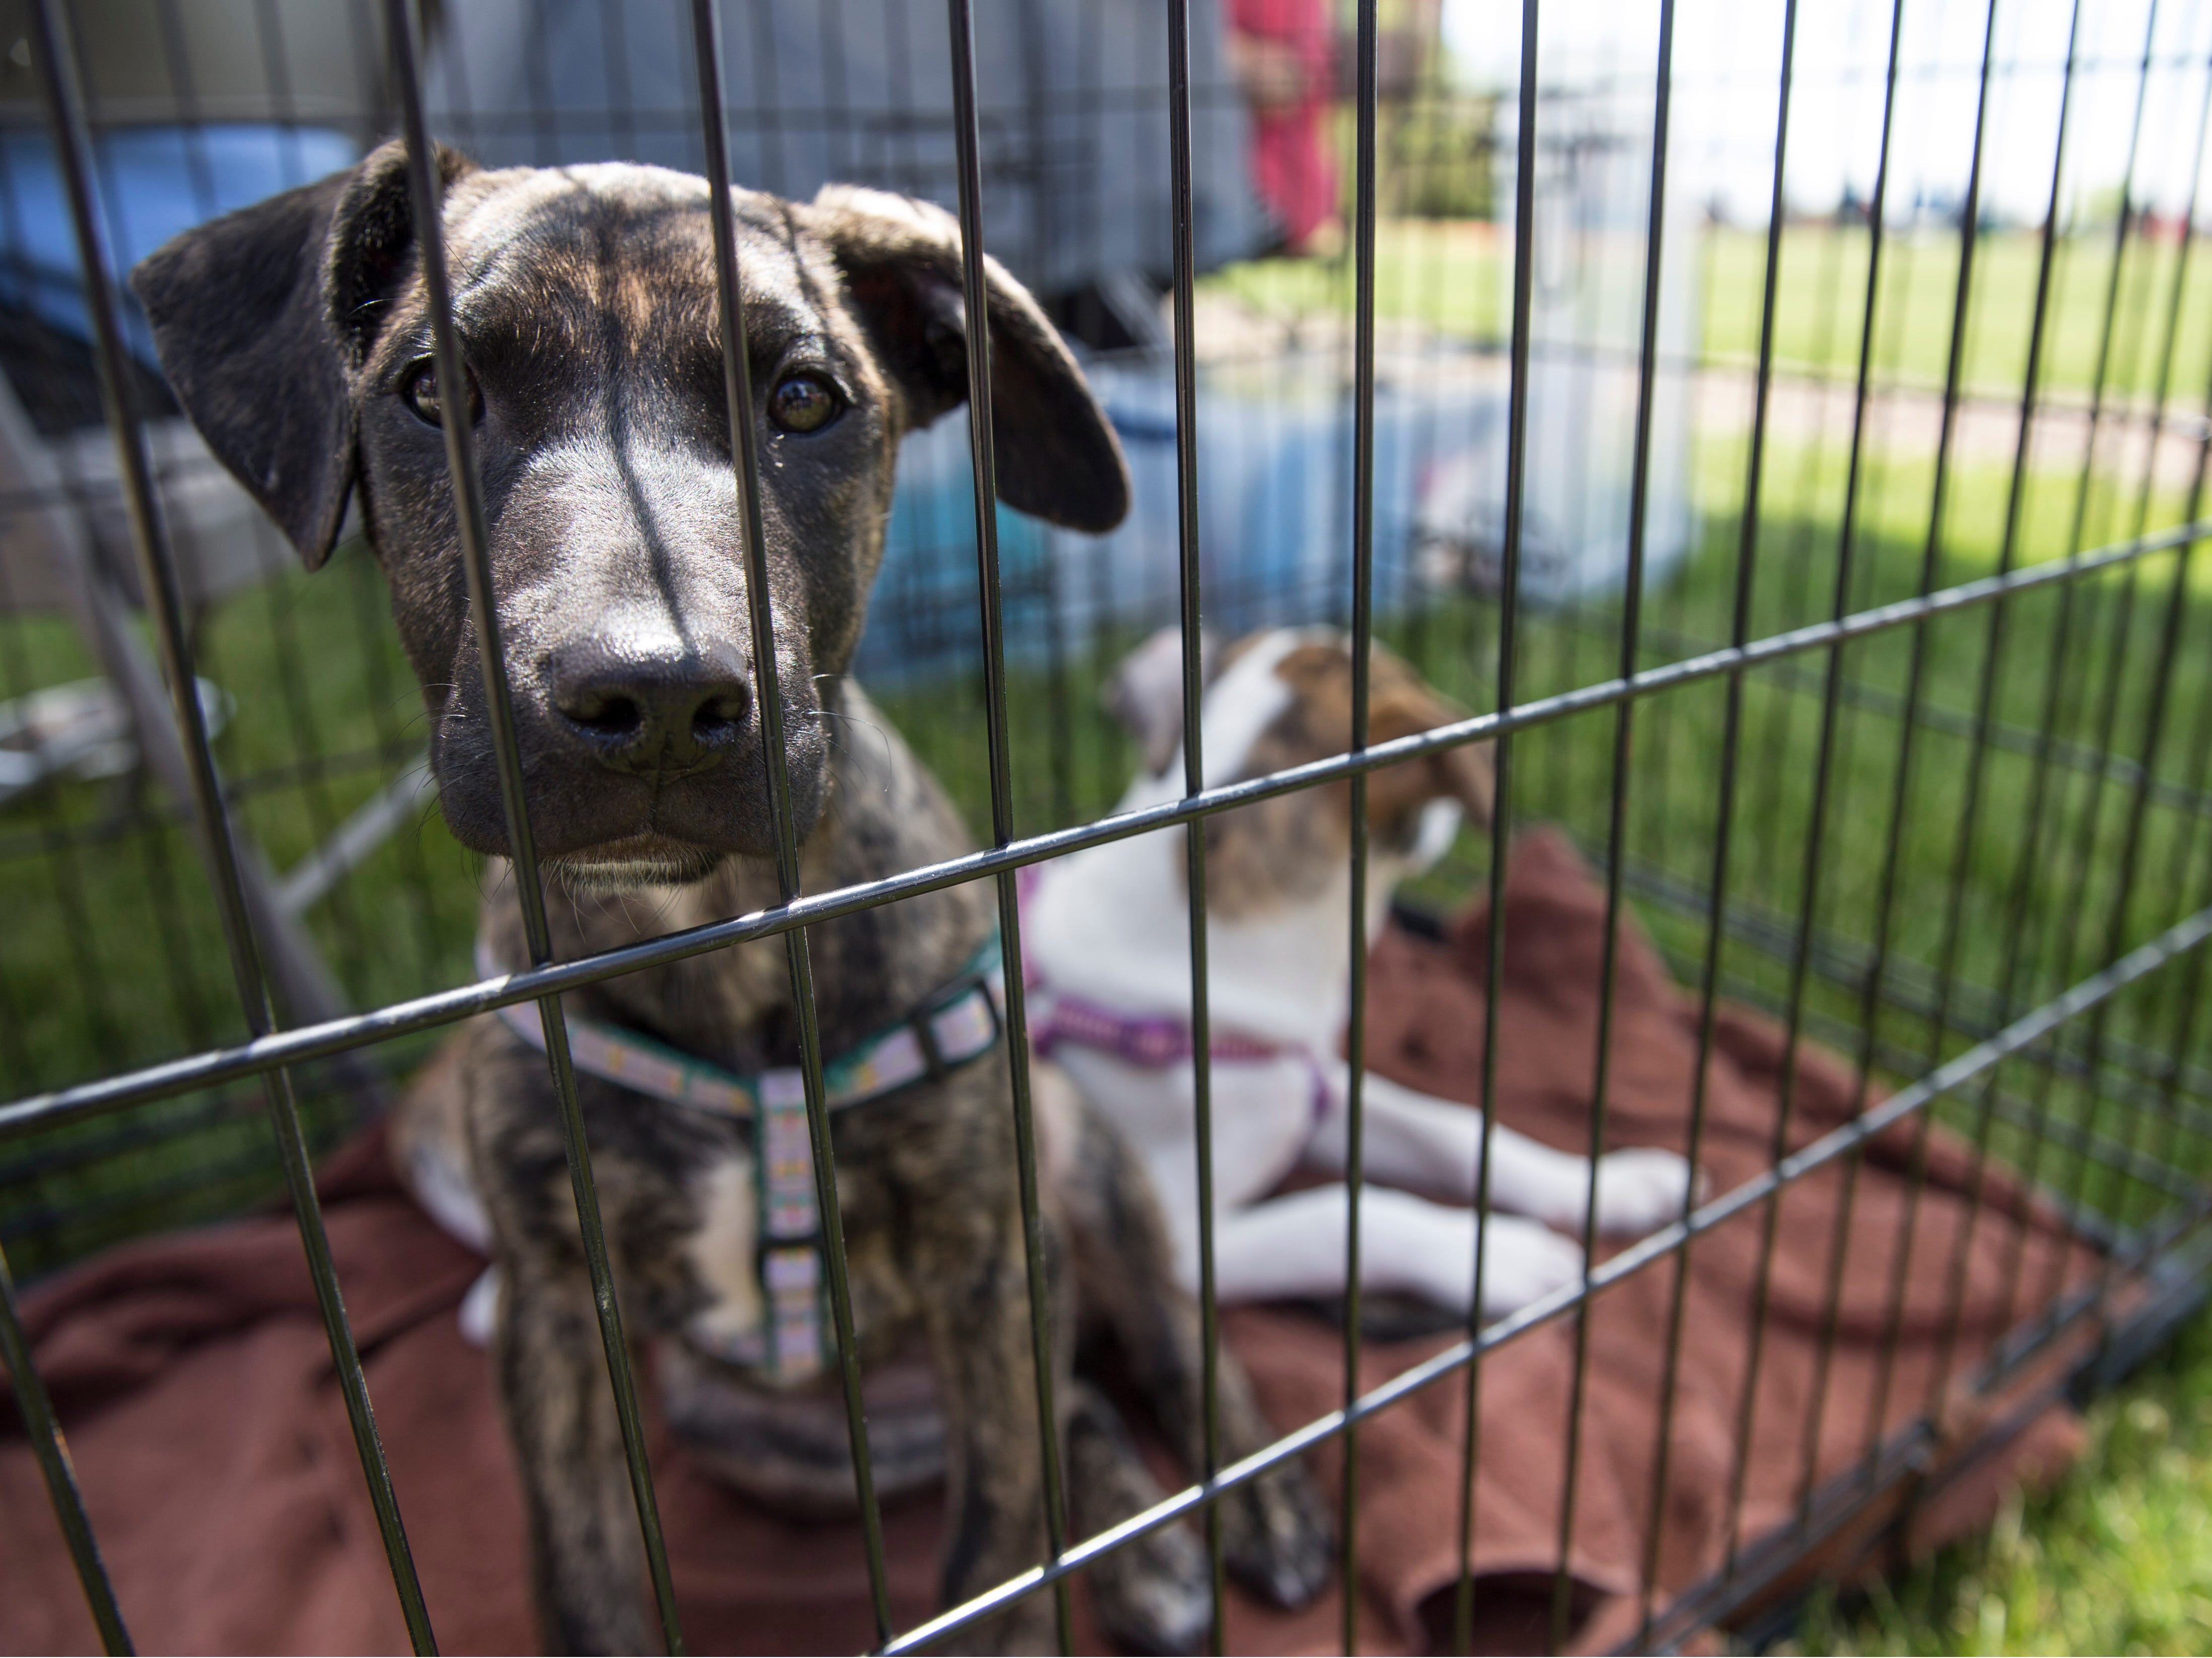 """Evelyn Hahoney of Bayville looks at two puppies up for adoption from Castle of Dreams Animal Rescue out of Keyport. Lakewood BlueClaws Bark in the Park takes place on stadium grounds prior to the game. Dogs were also allowed to attend the game with a """"pooch pass"""". Many adoption agencies were on hand offering dogs looking for homes to qualified humans. Lakewood, NJSaturday, May 11, 2019"""